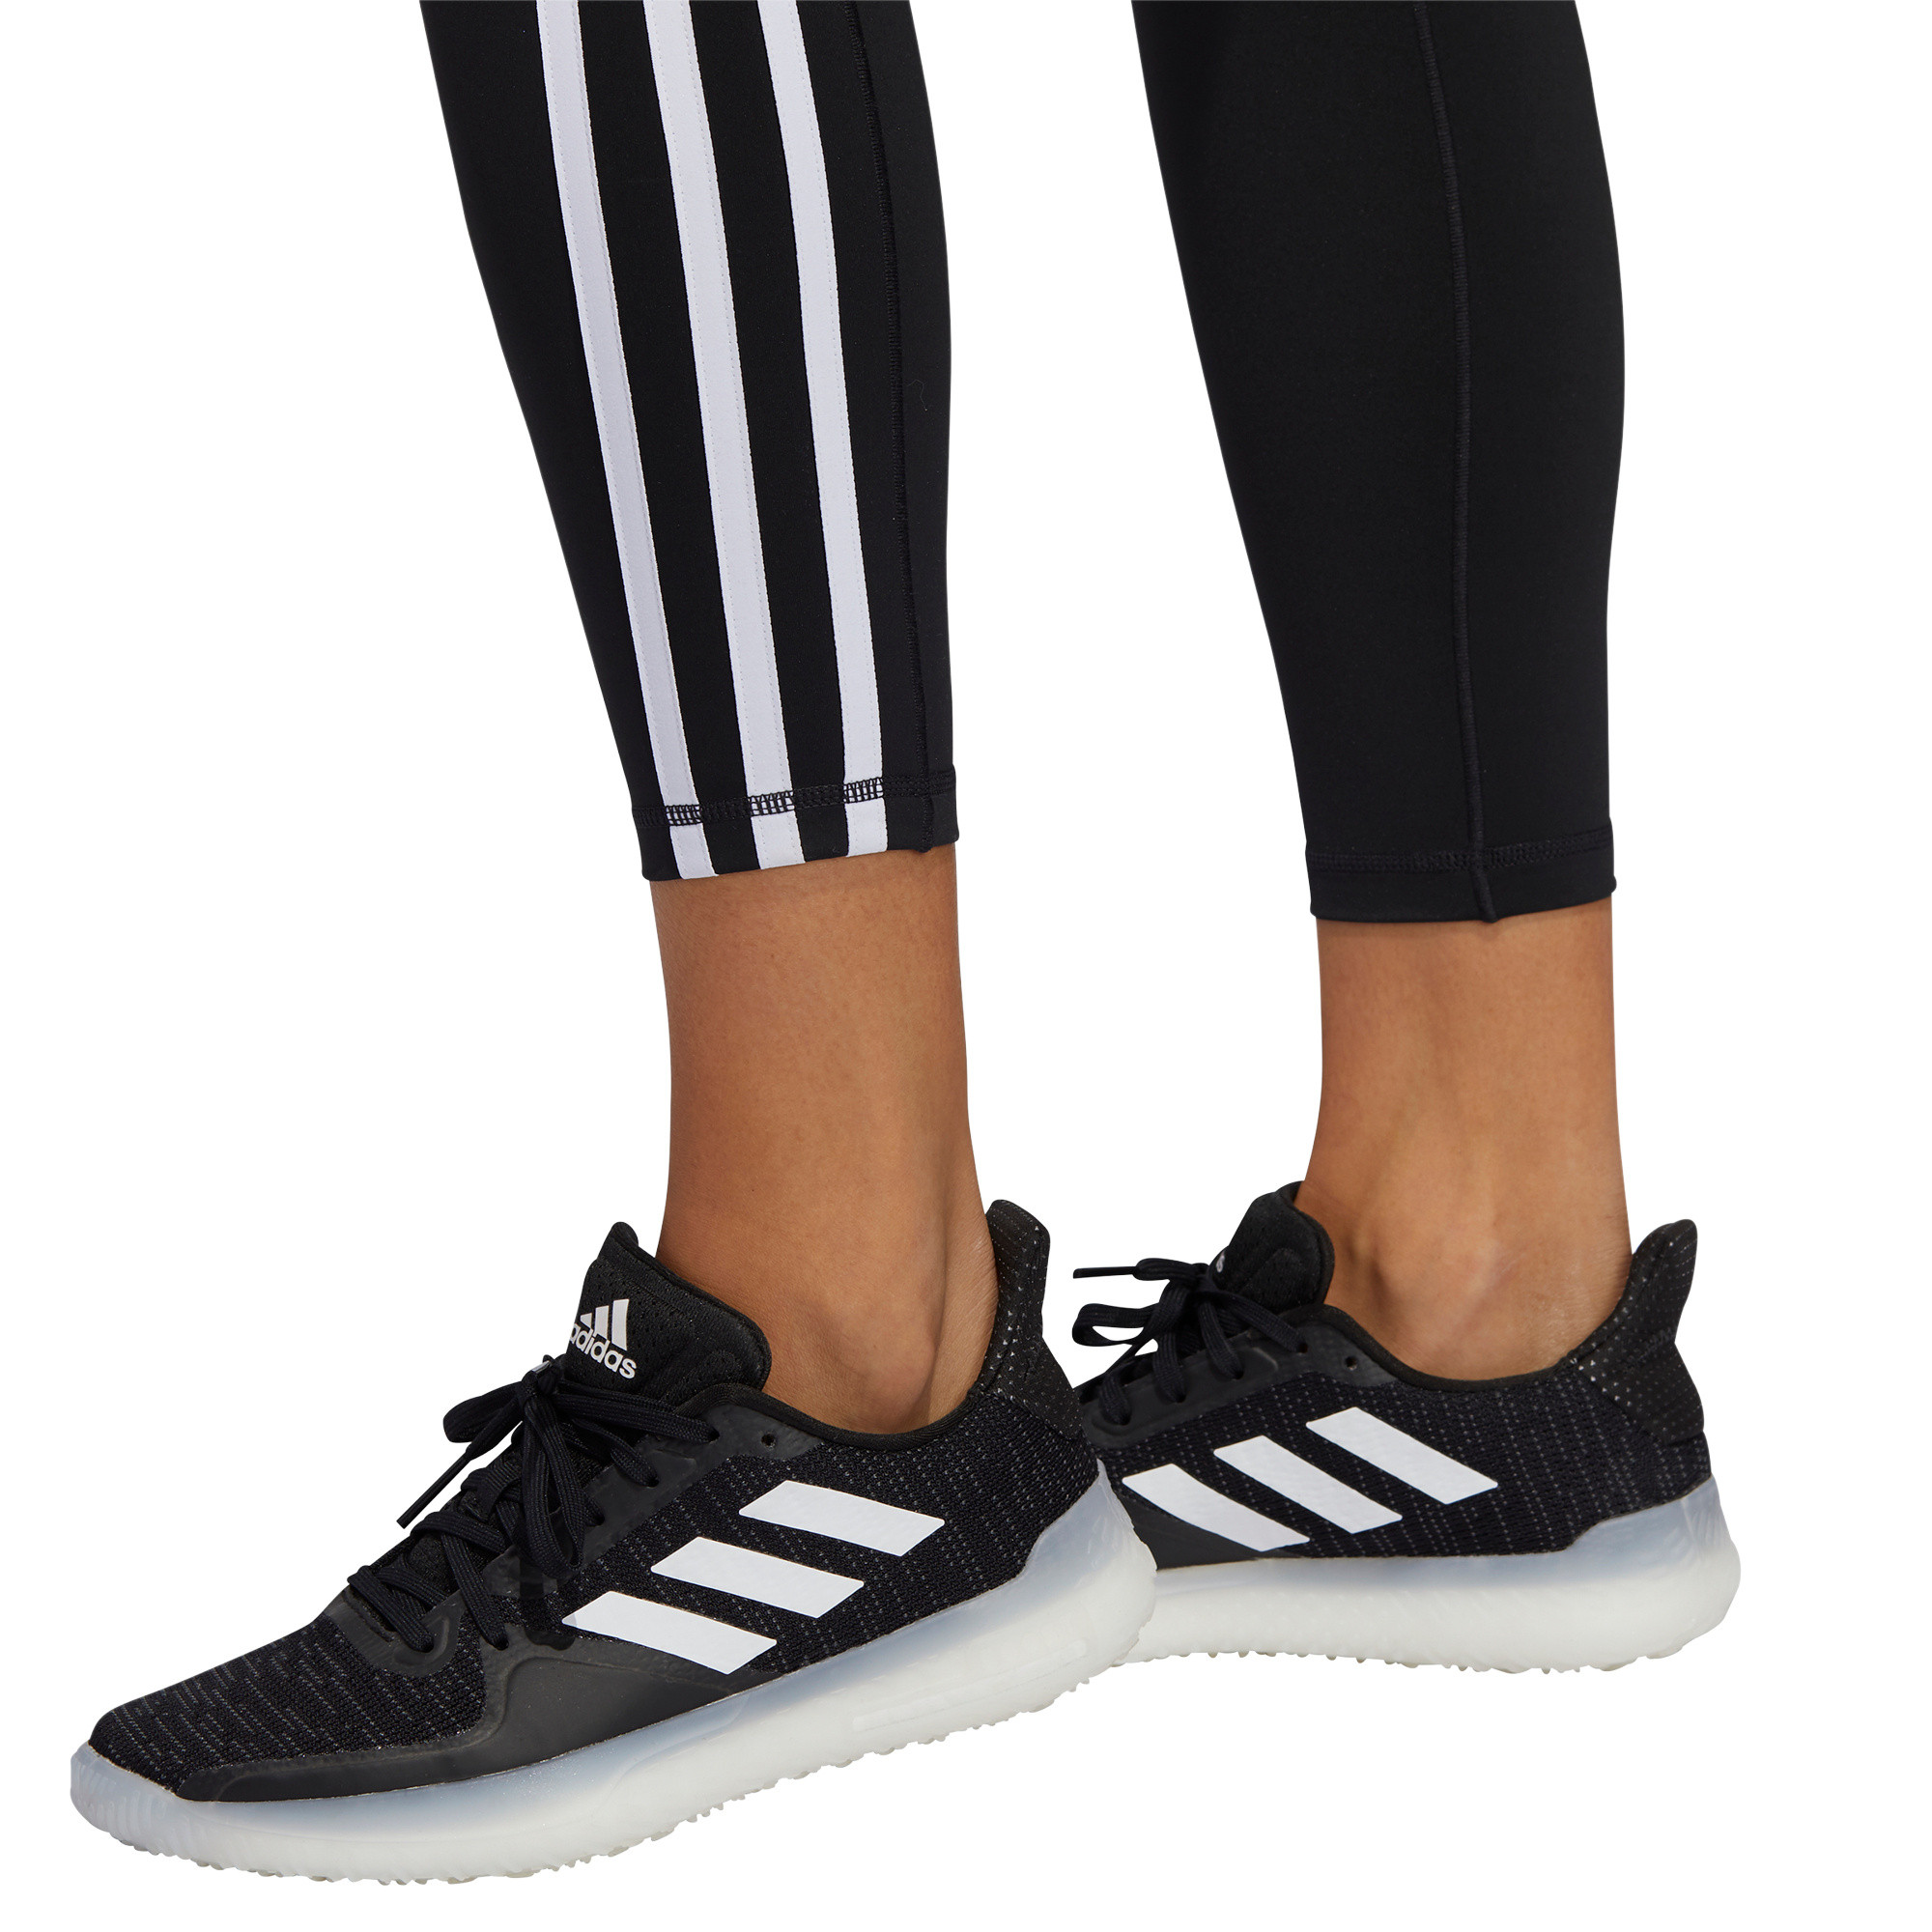 Tight 7/8 Believe This 2.0 3-Stripes, Nero, large image number 4